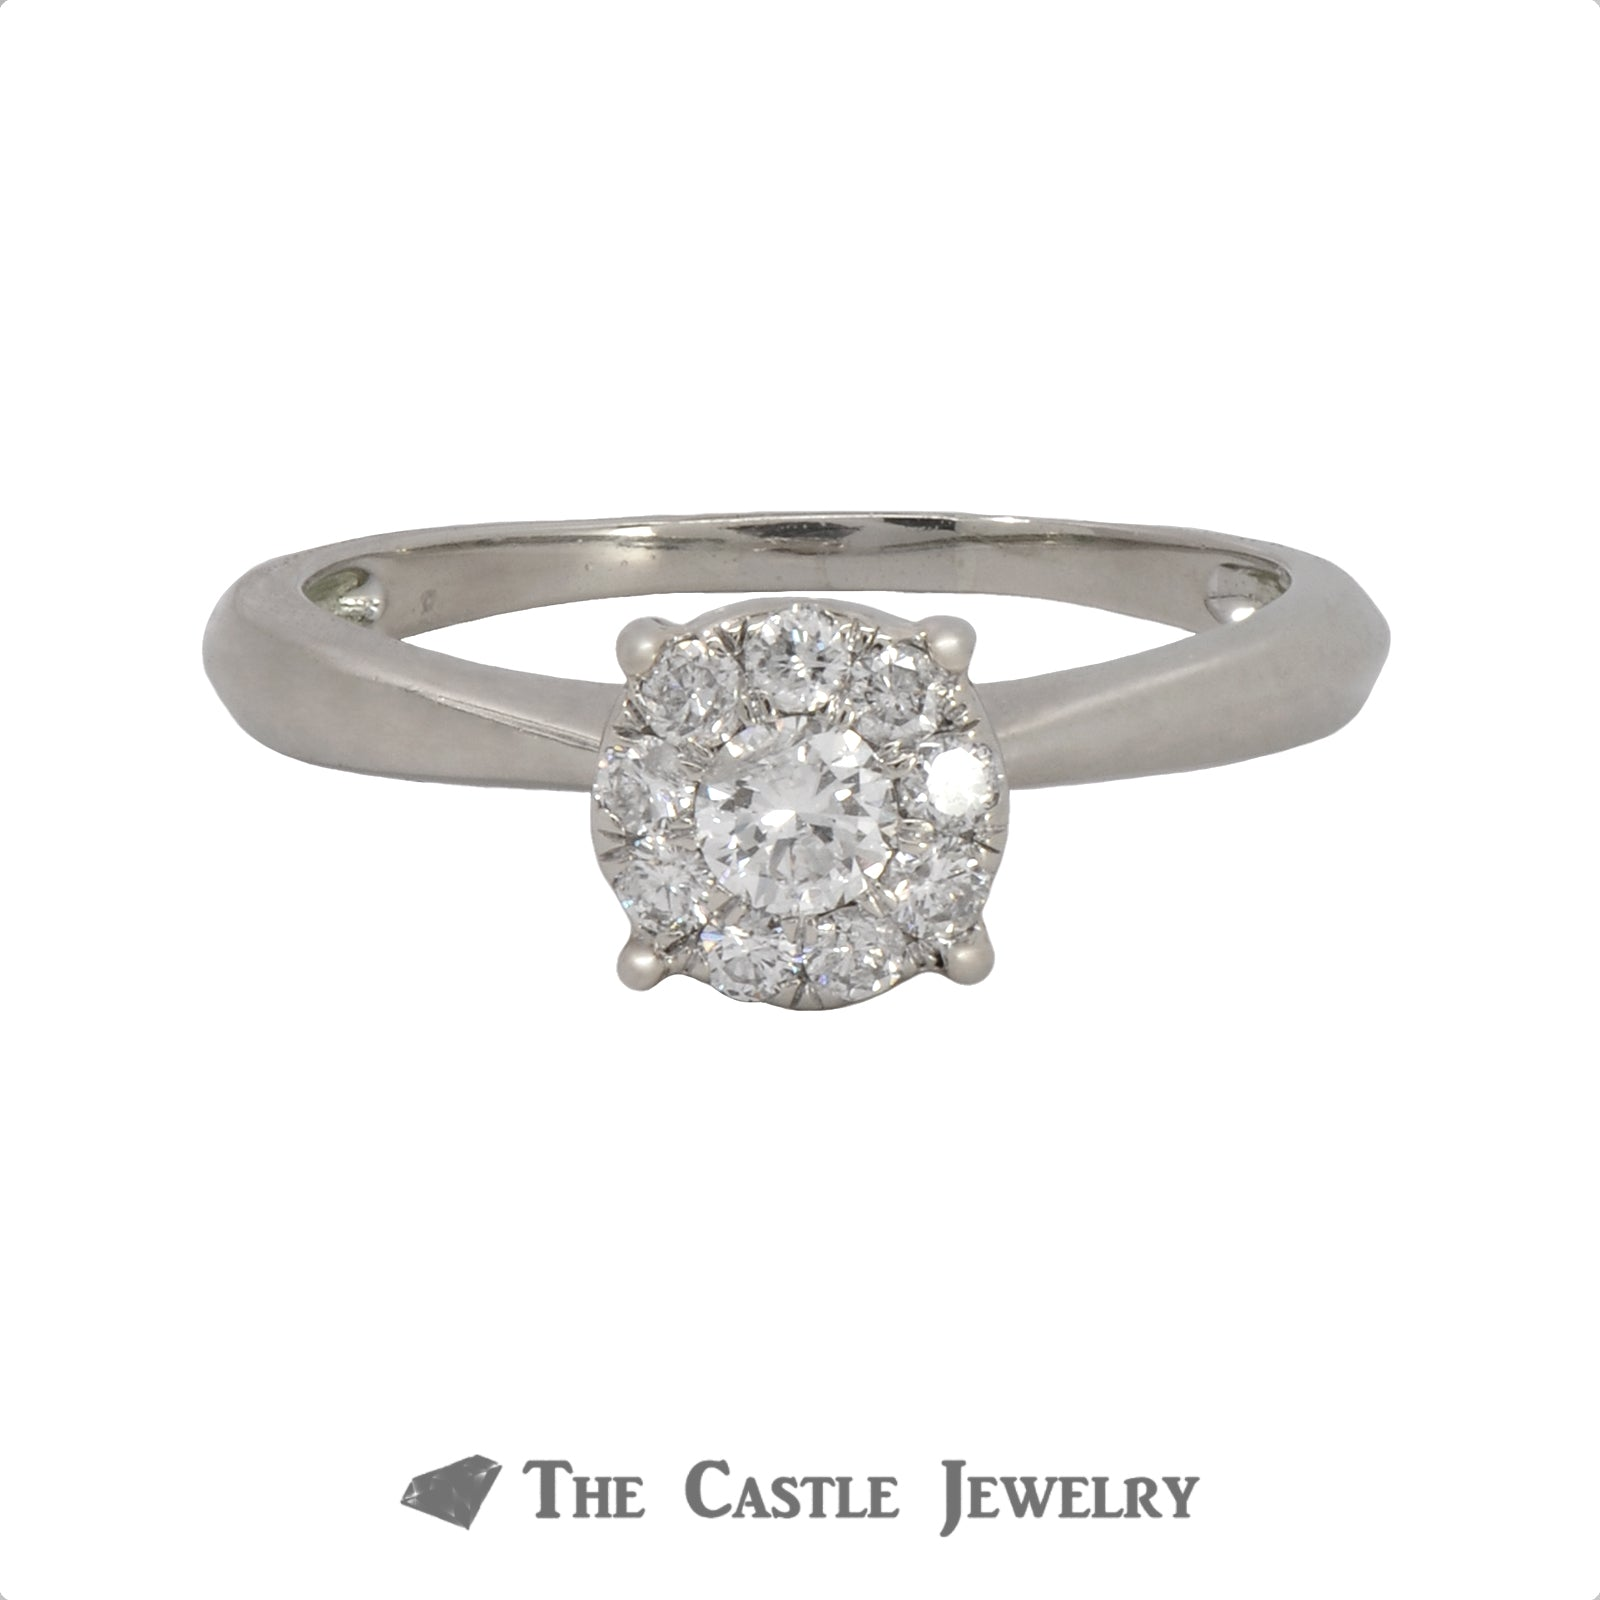 1/2cttw Diamond Cluster Ring in 14K White Gold Cathedral Mounting